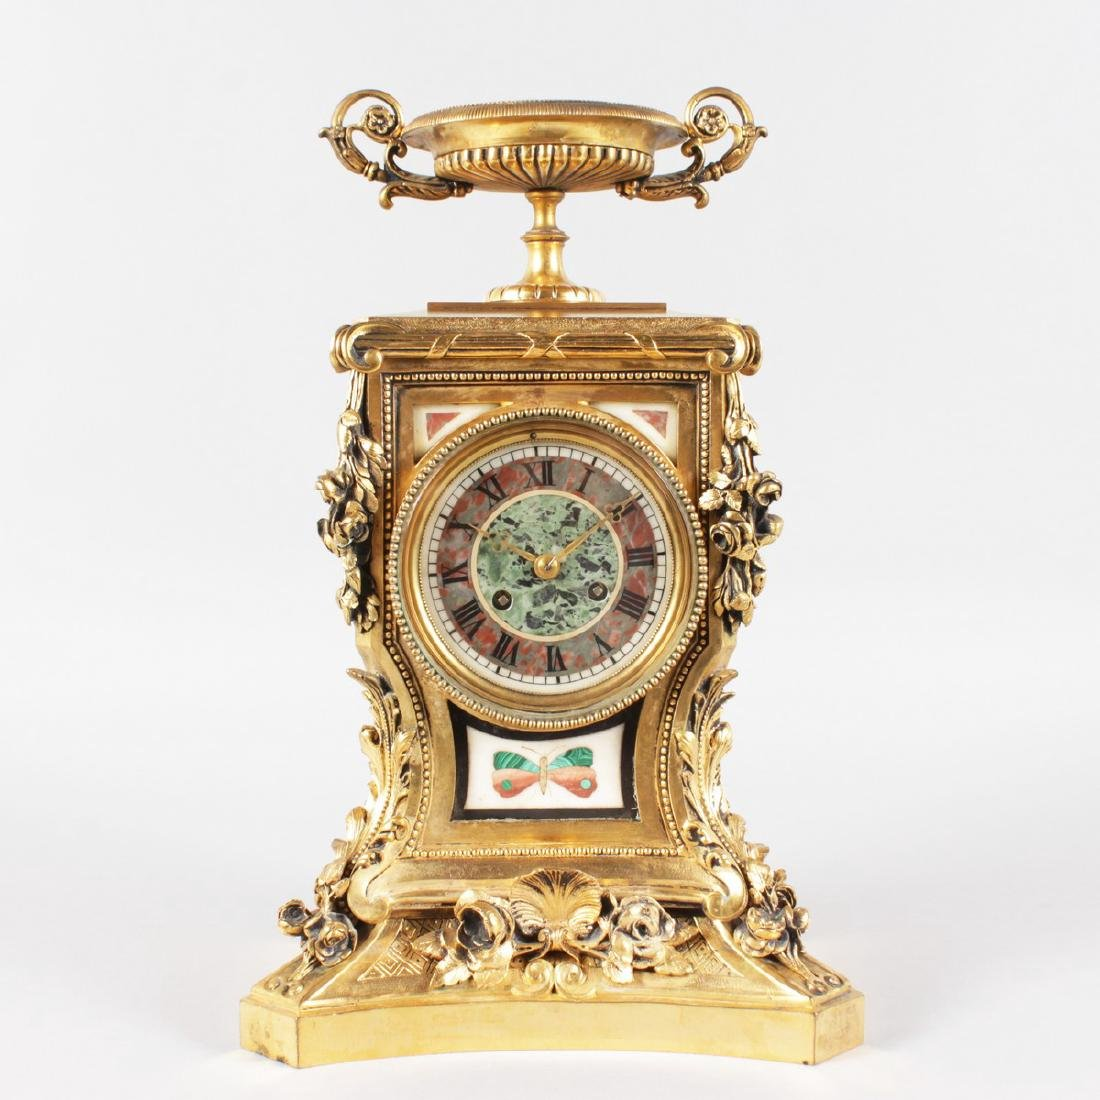 A SUPERB LOUIS XVI ORMOLU AND PIETRA DURA MANTLE CLOCK,